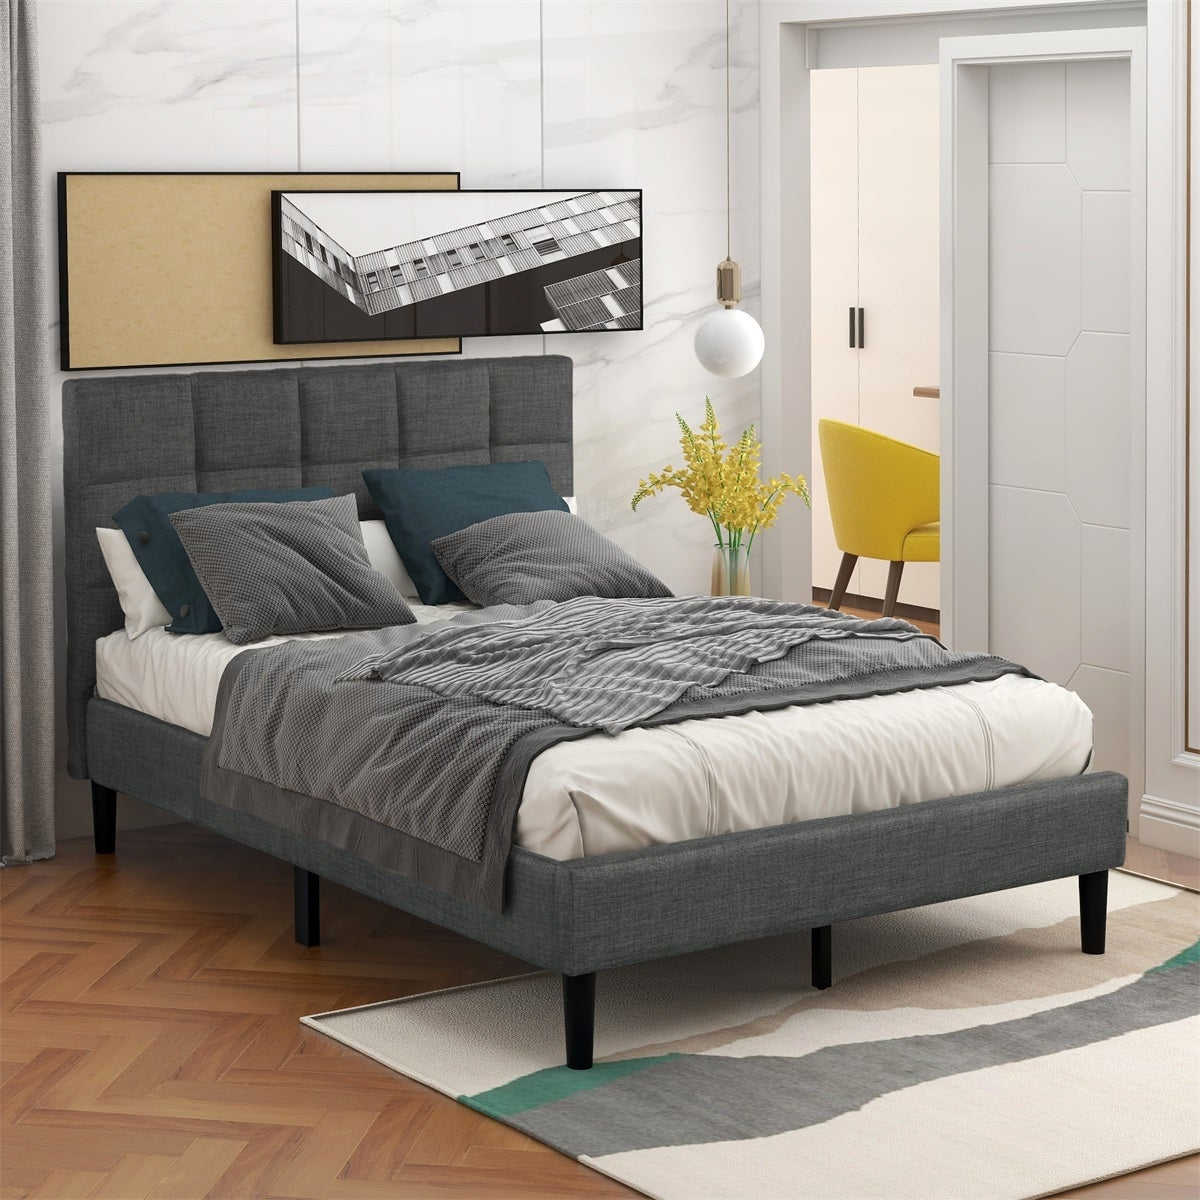 Picture of: Shop Black Friday Deals On Merax Twin Size Diamond Stitched Upholstered Platform Bed With Headboard No Box Spring Needed Overstock 31825474